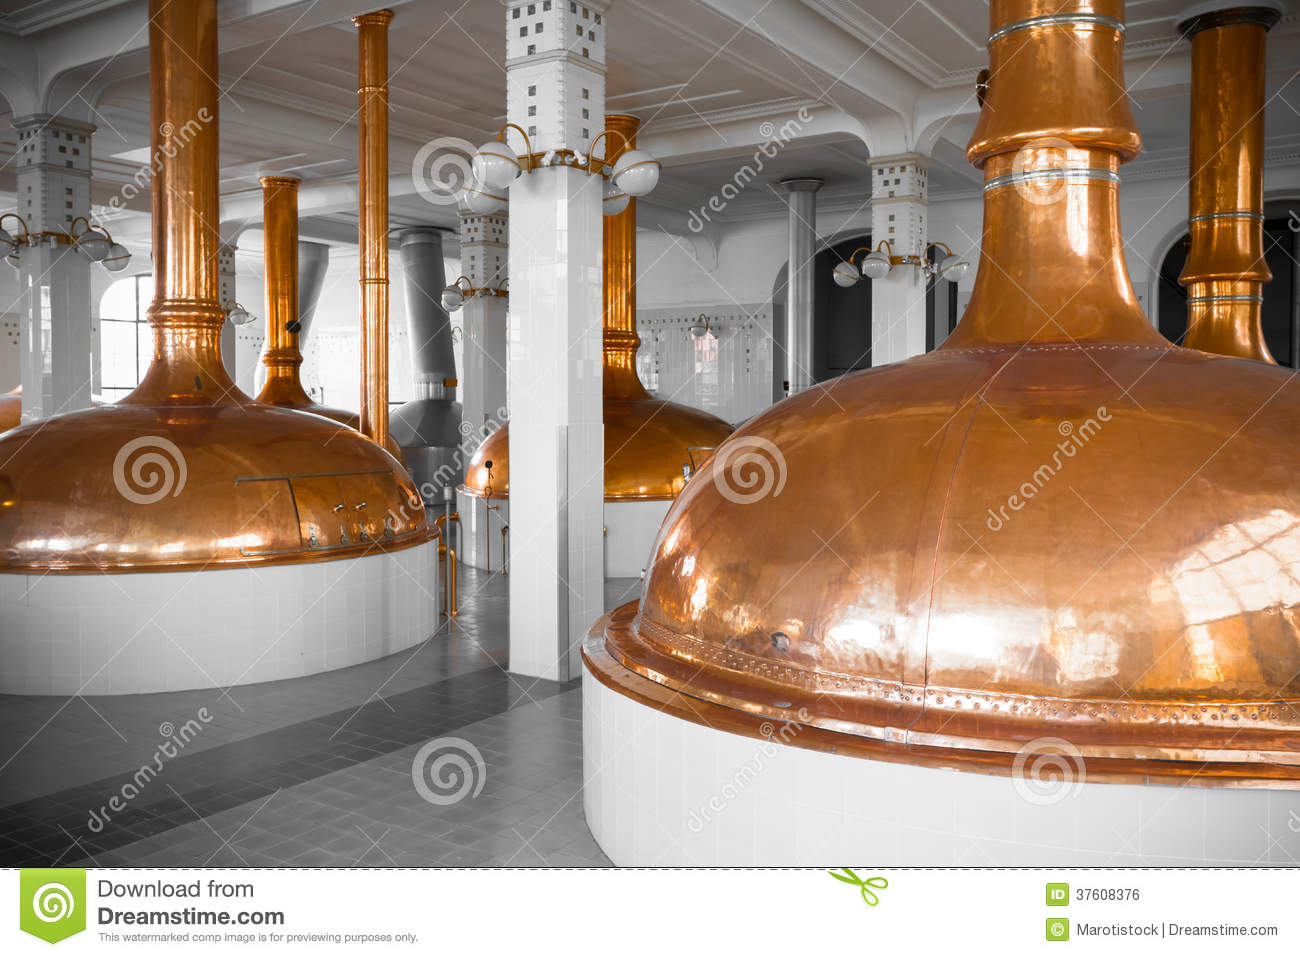 Brewery Building Interior Royalty Free Stock Image   Image  37608376